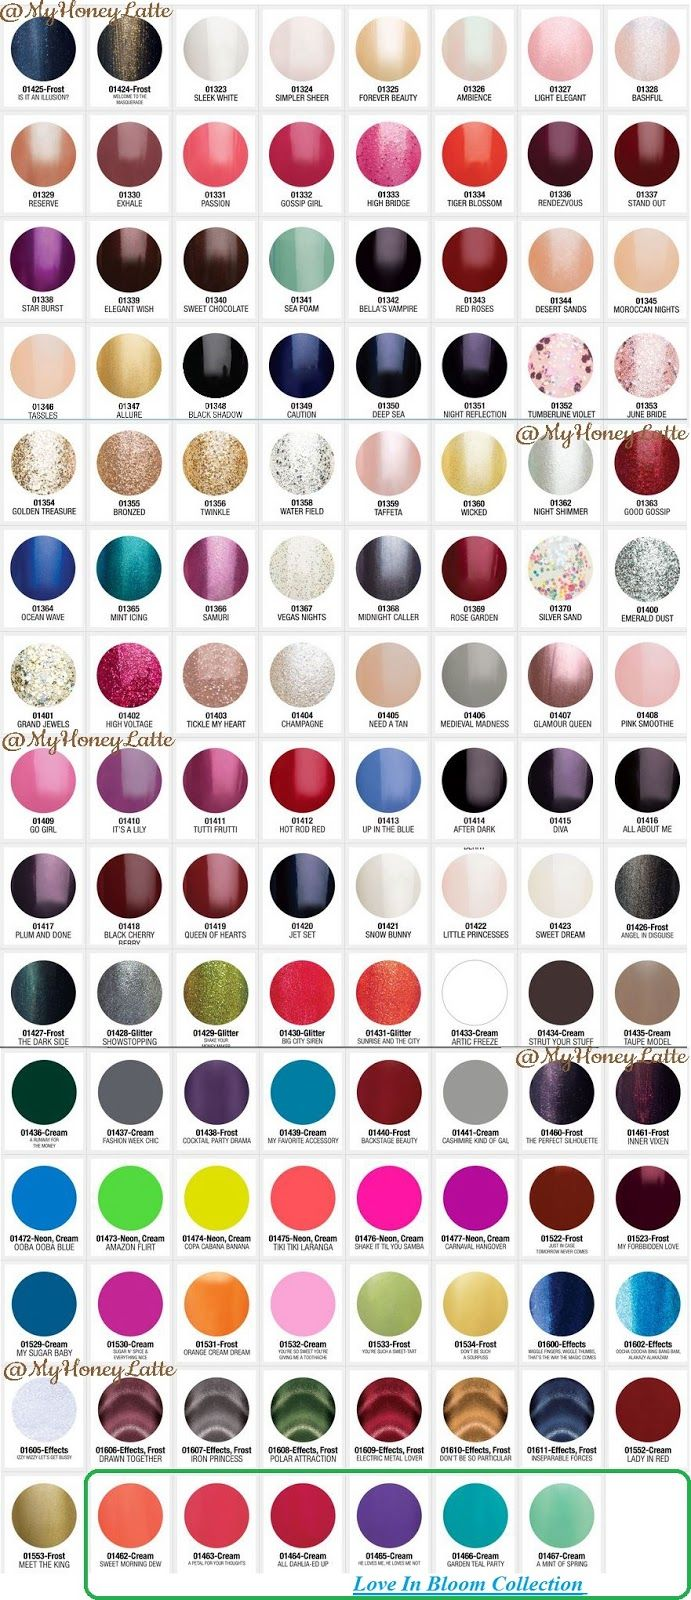 Gelish color swatches... Working on my collection!!  So far I have 13 of these beautiful colors!